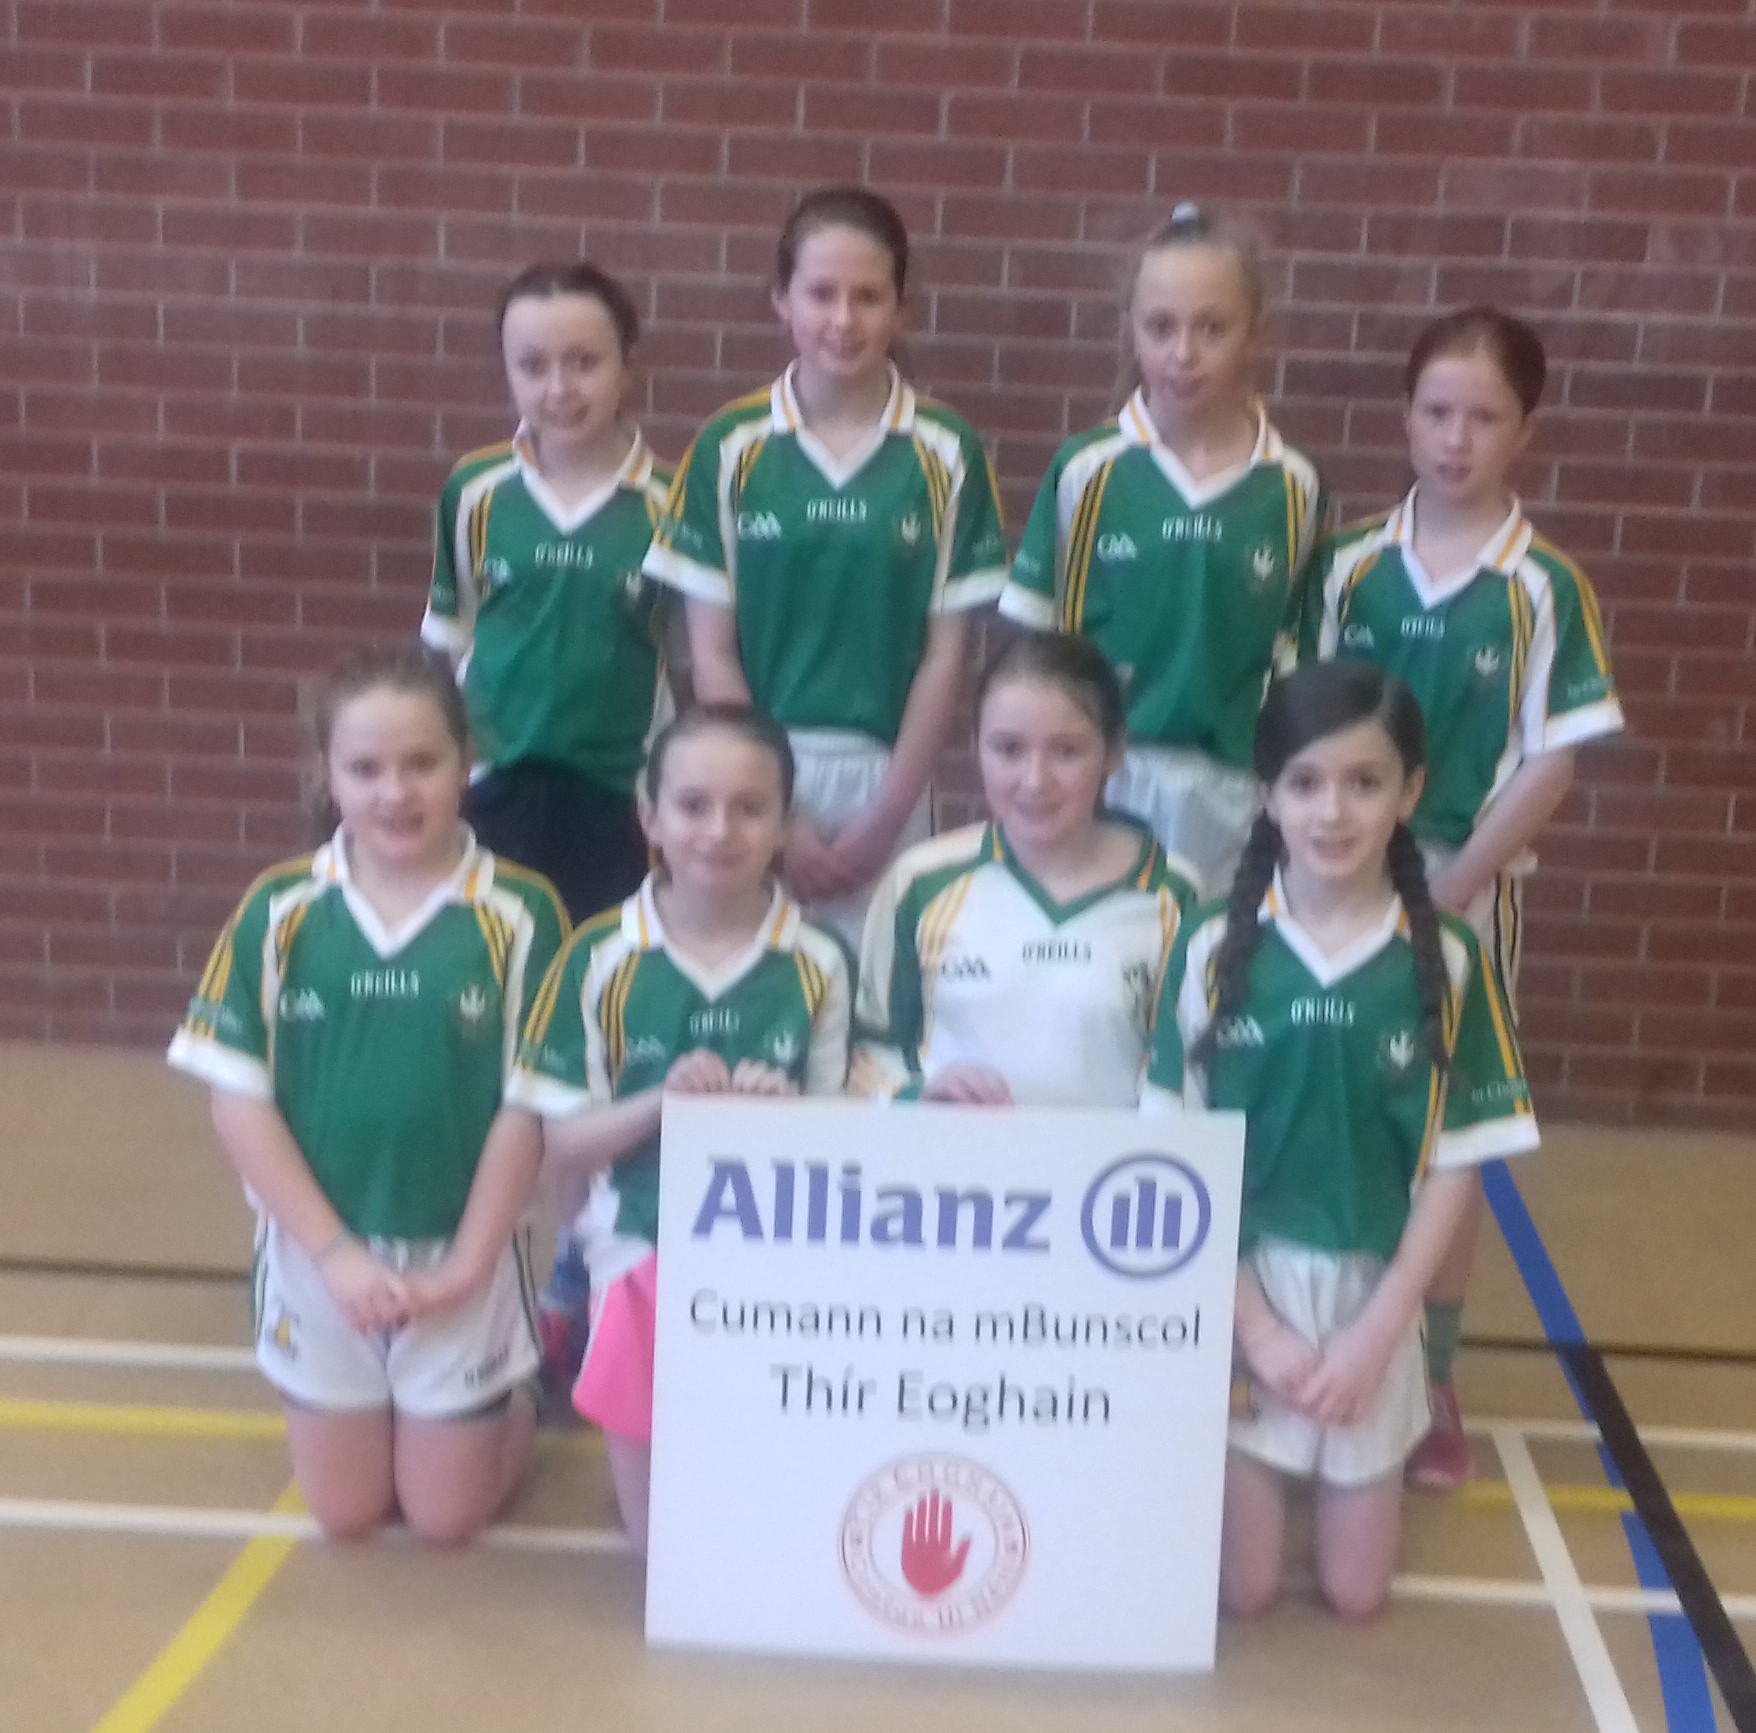 ALLIANZ CUMANN Na mBUNSCOL – GIRLS' INDOOR FOOTBALL HEAT 5: Omagh